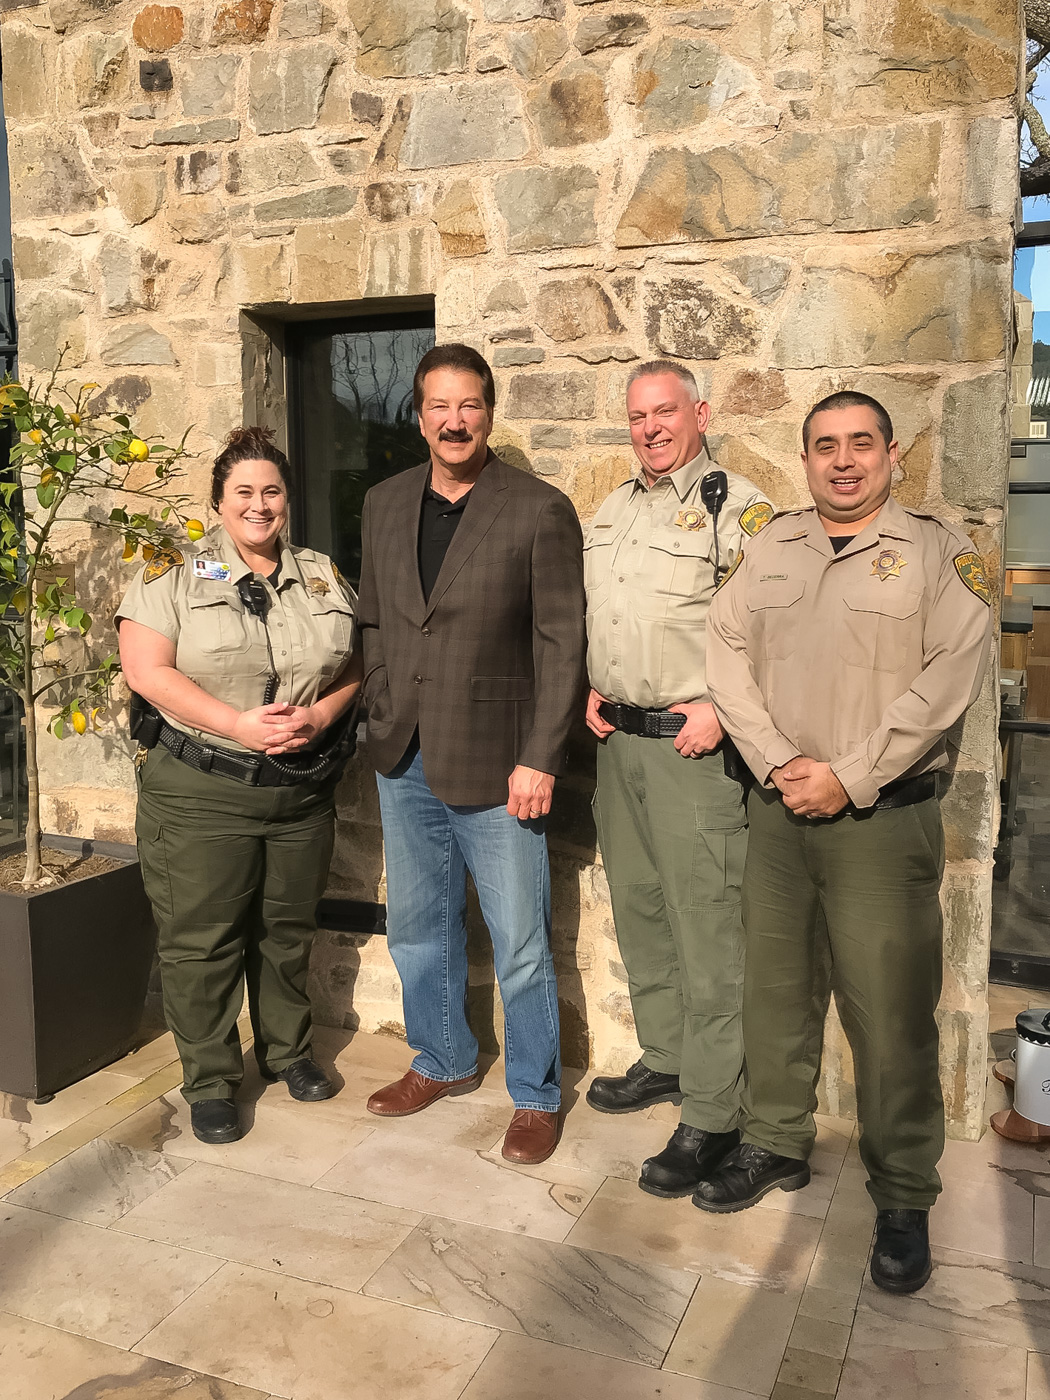 CSLEA President Thanks Yountville Firefighter Security Officers Recognized for Assisting with North Bay Fires